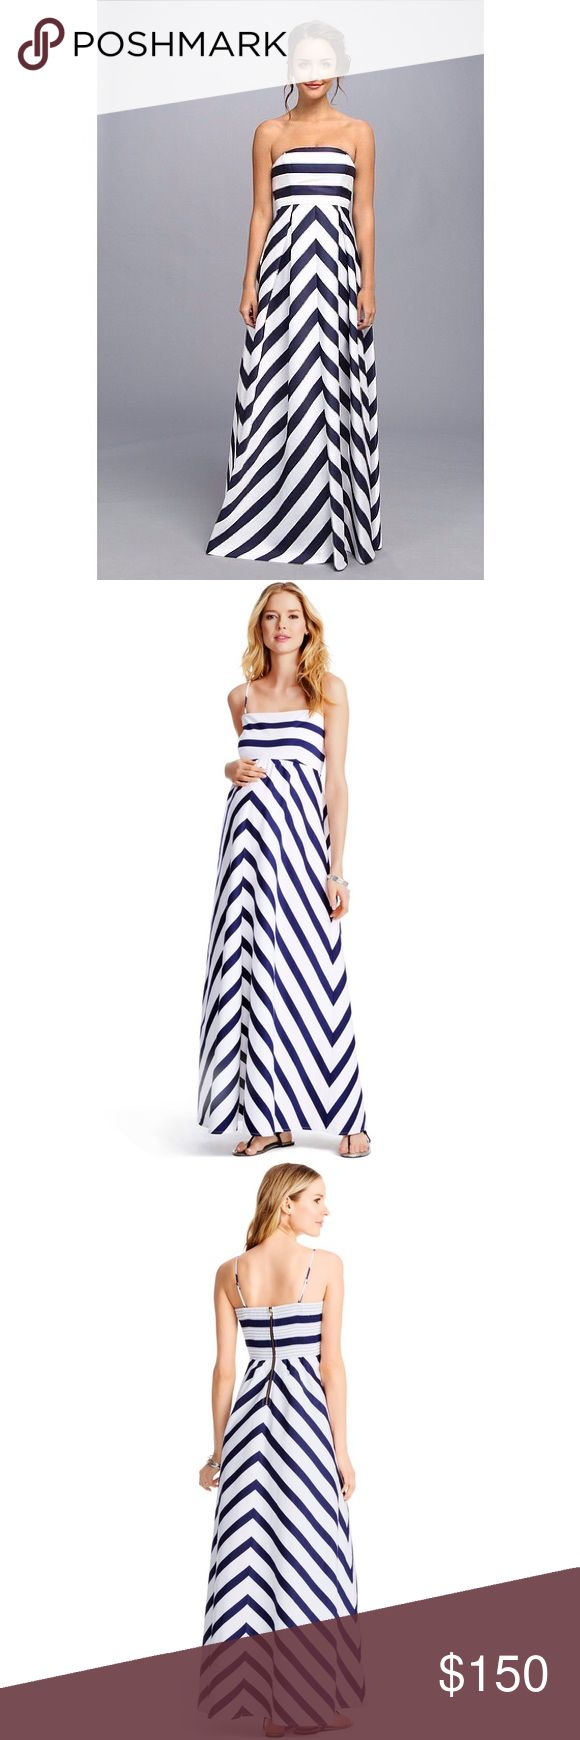 Jessica Simpson Nautical Striped Maternity Maxi This dress is GORGEOUS. I wore it to my brother in law's wedding last year. It was so much fun to wear!! Classic and sexy at the same time. The top can be worn with spaghetti straps or strapless, and has enough lining to forego a bra. The back has a gold zipper which makes a great accent, and also suggests fun gold accessories. This dress is so comfortable, and in like new condition. Only worn once for a couple of hours!! I am not set on…